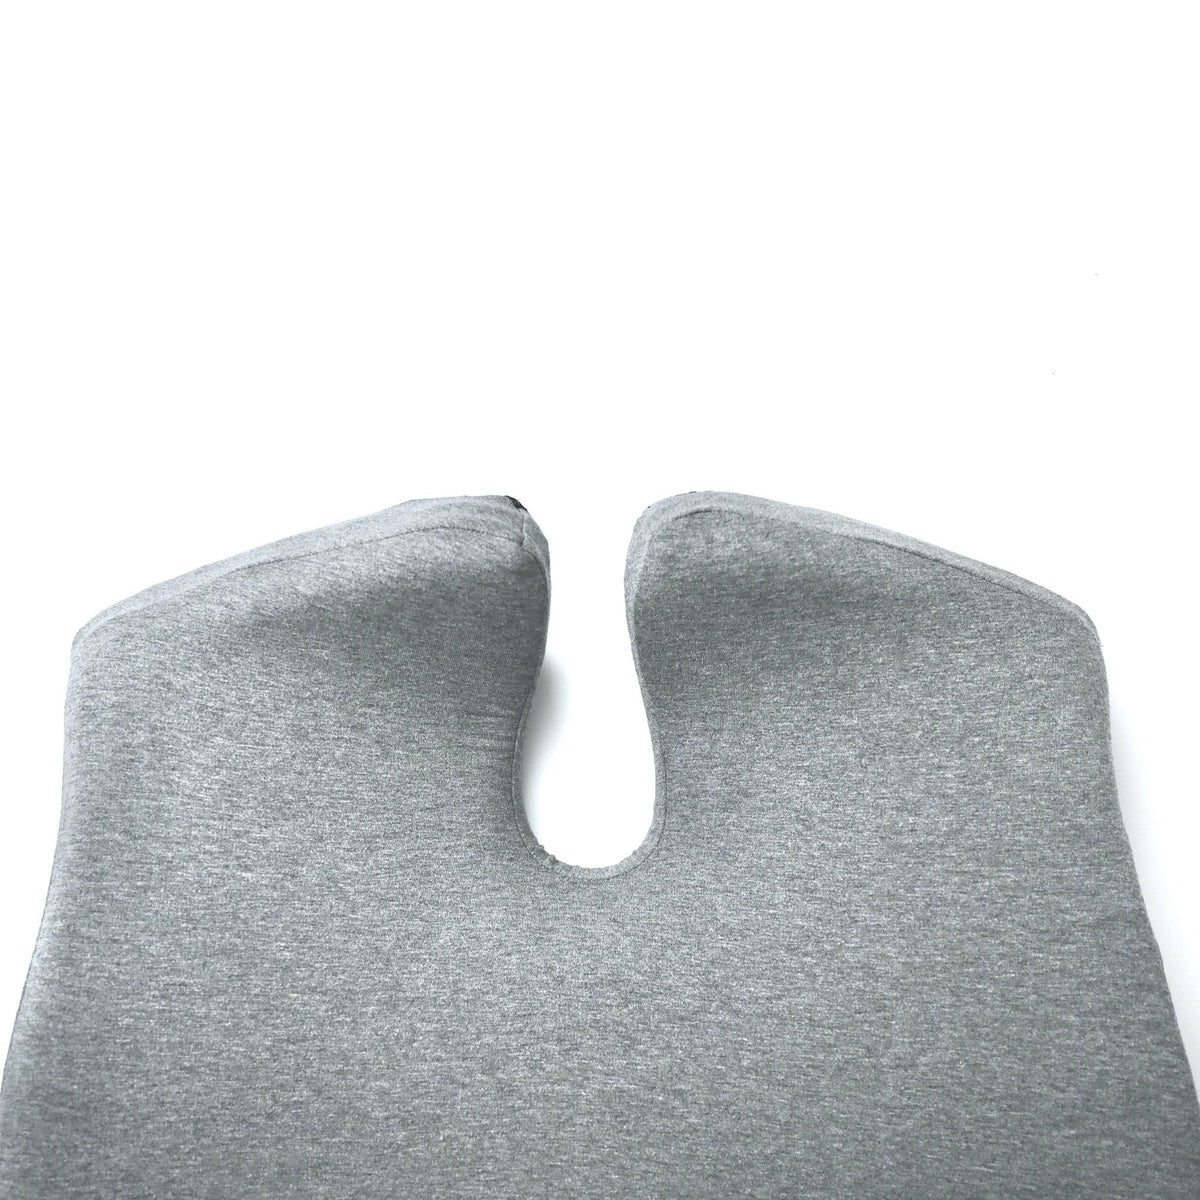 Cushion Lab Pressure Relief Seat Cushion 05